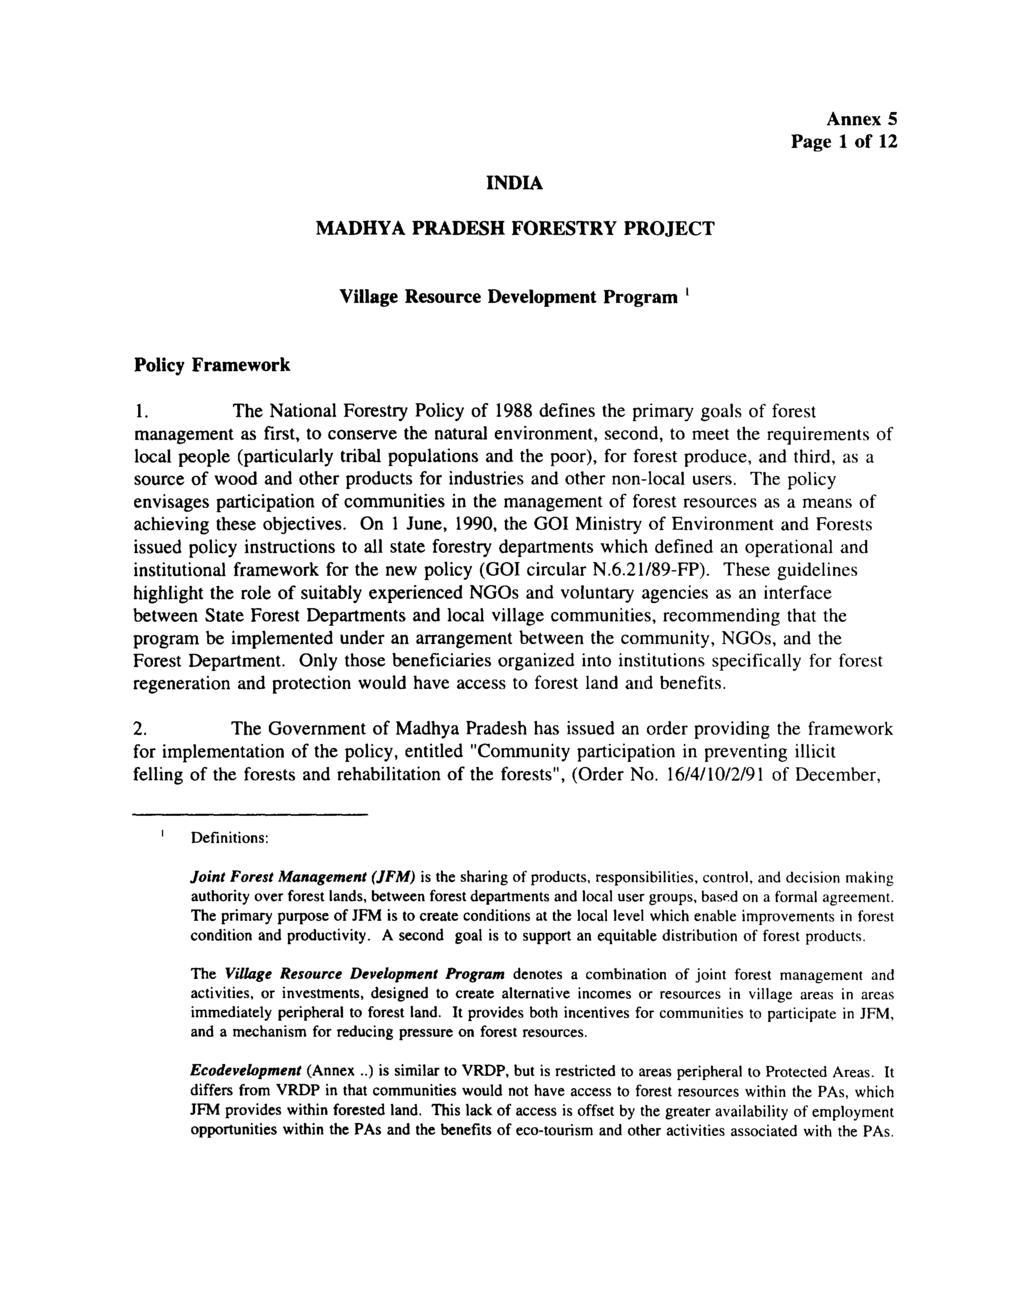 Annex 5 Page 1 of 12 INDIA MADHYA PRADESH FORESTRY PROJECT Village Resource Development Program Policy Framework 1.